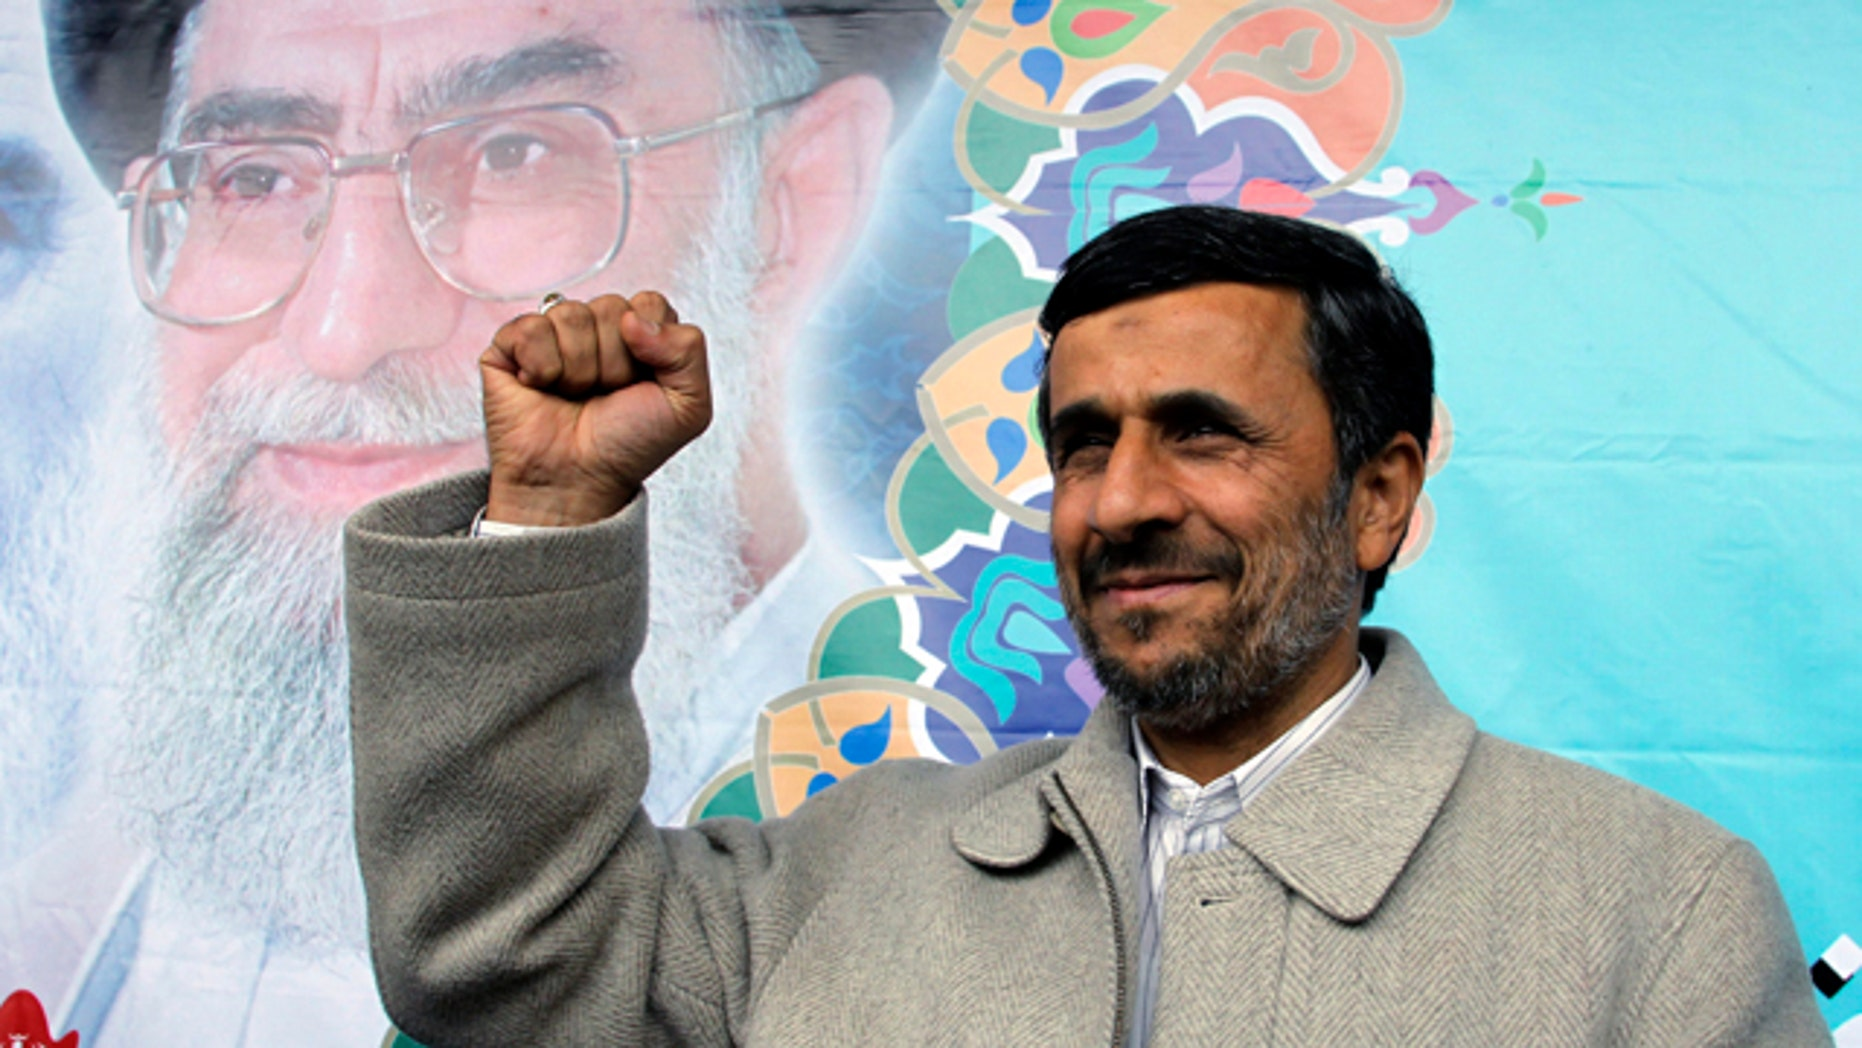 February 2011: Iranian President Mamoud Ahmadinejad, shown in this file photo pumping his fist, reportedly has been butting heads with Supreme Leader Ayatollah Ali Khamenei, in background.